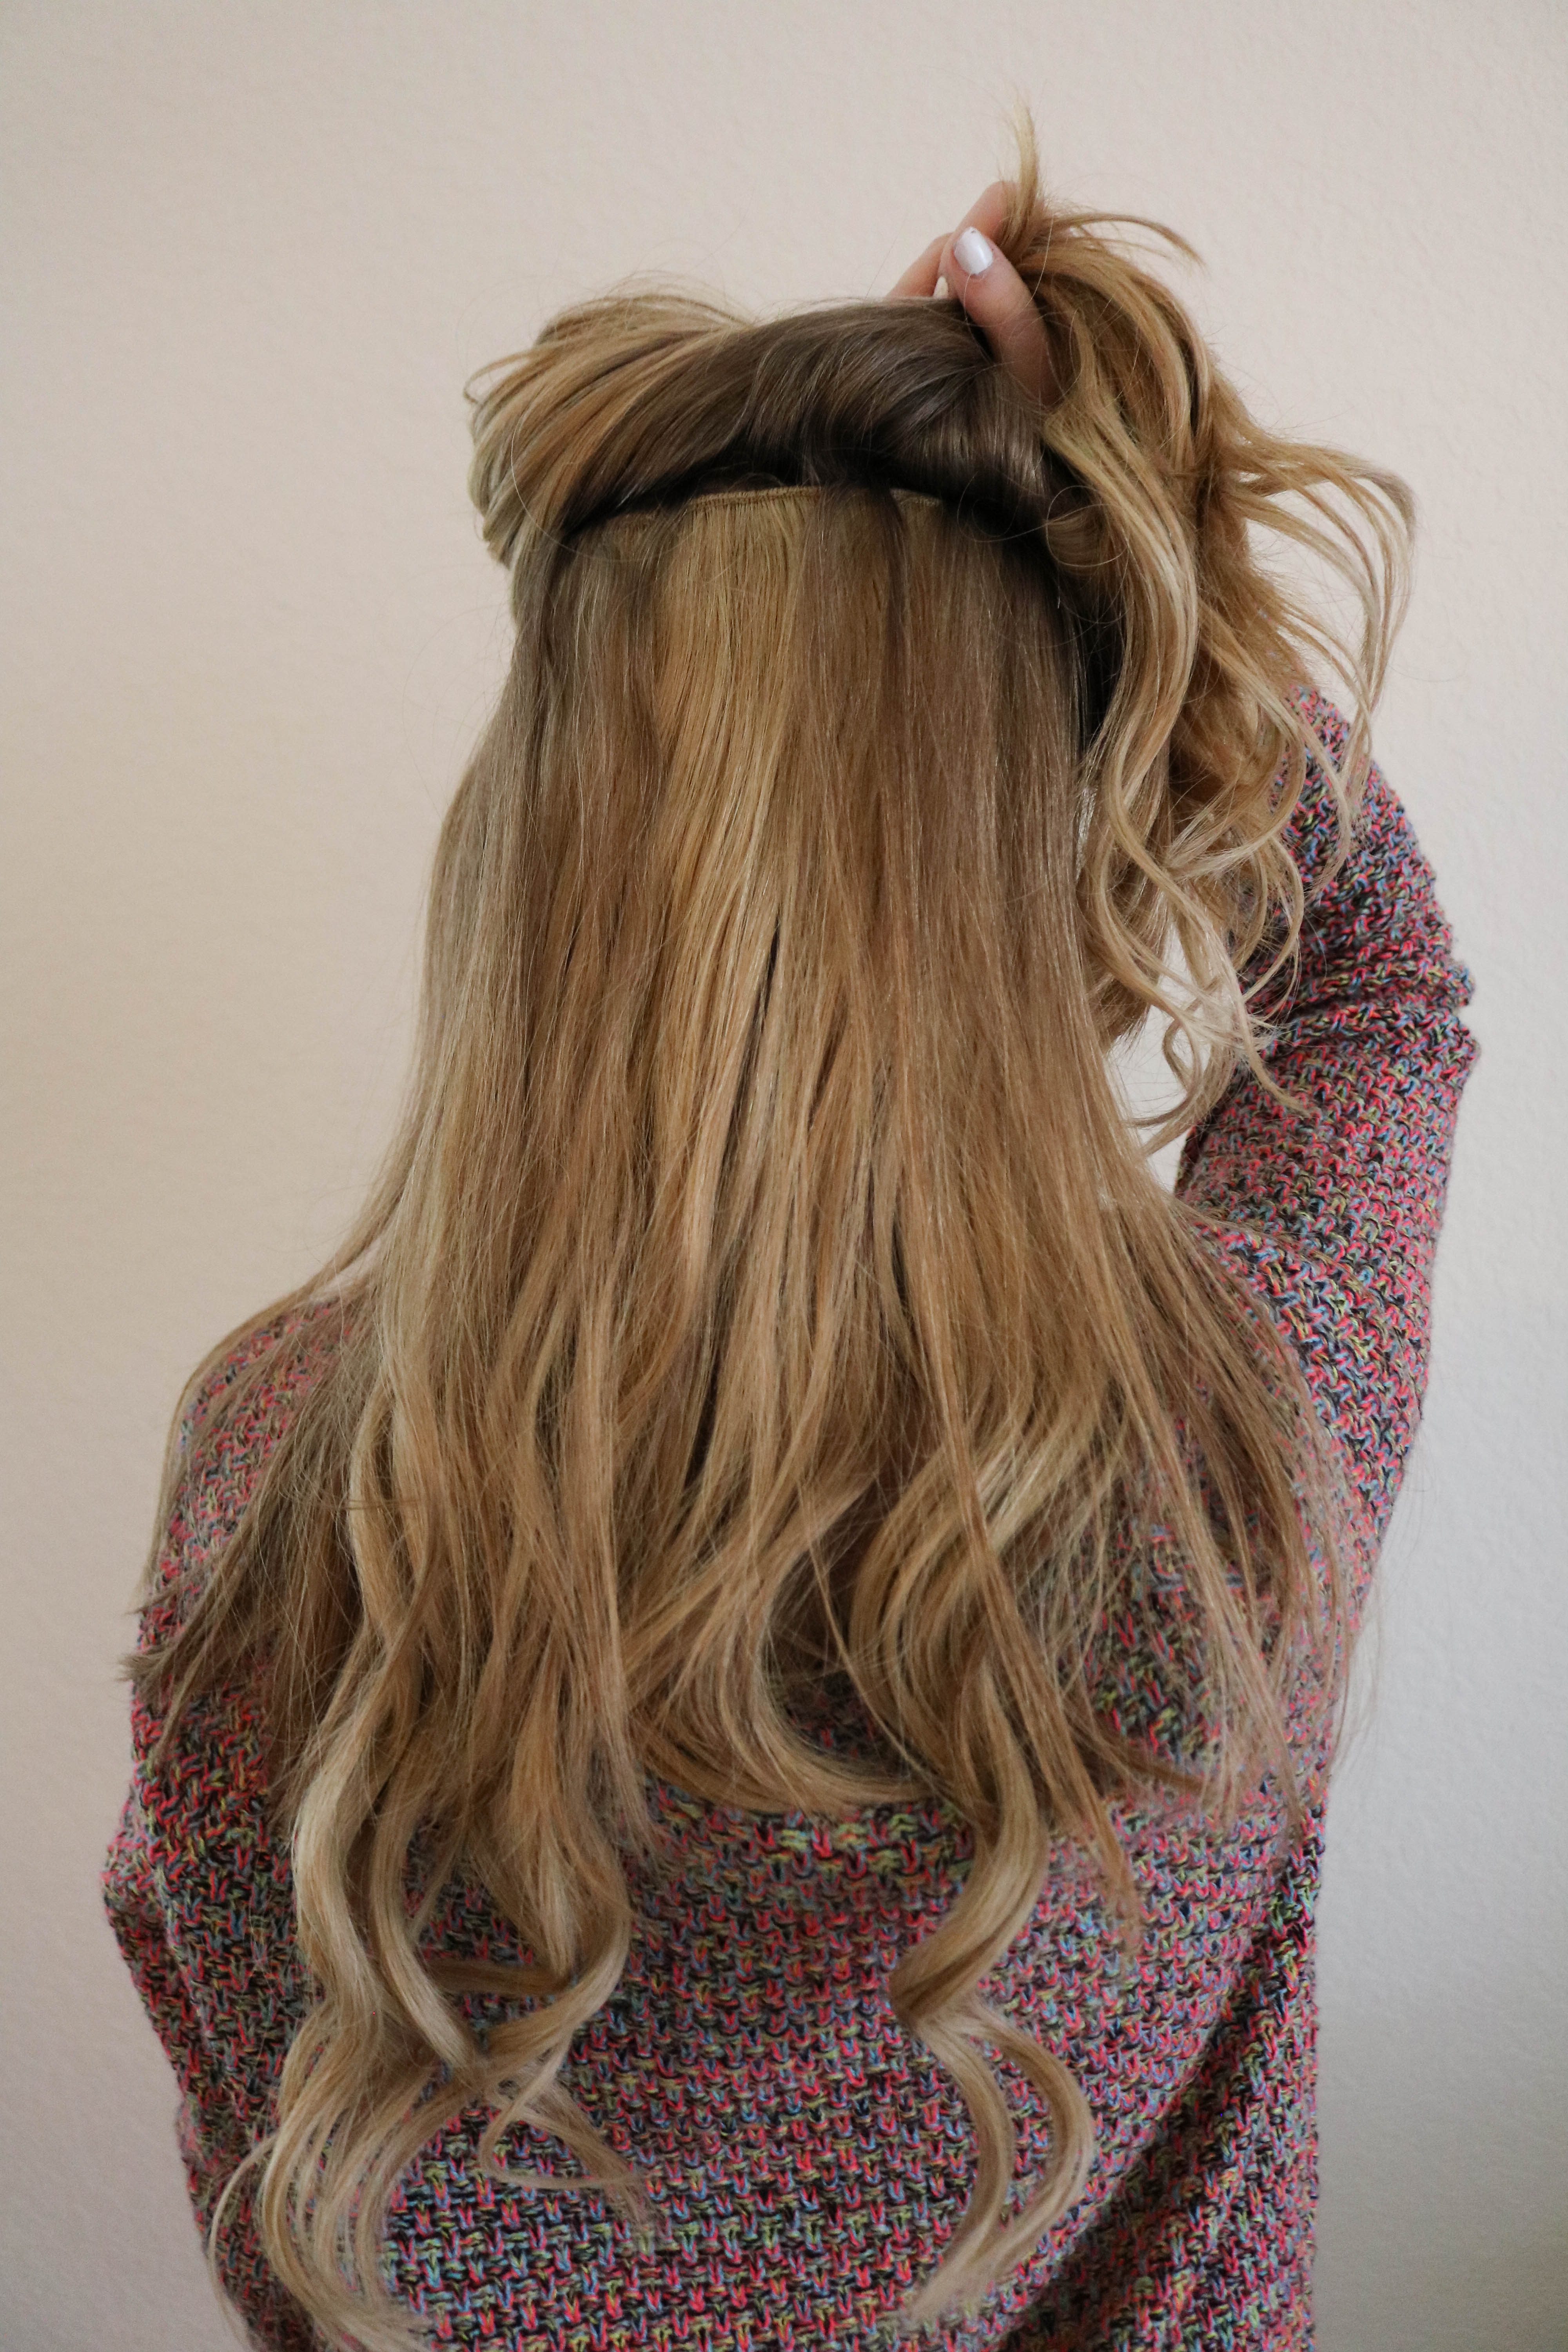 A Beginners Guide To Hair Extensions | How to put them in, what color to pick and how they will look on - The Blonder Life